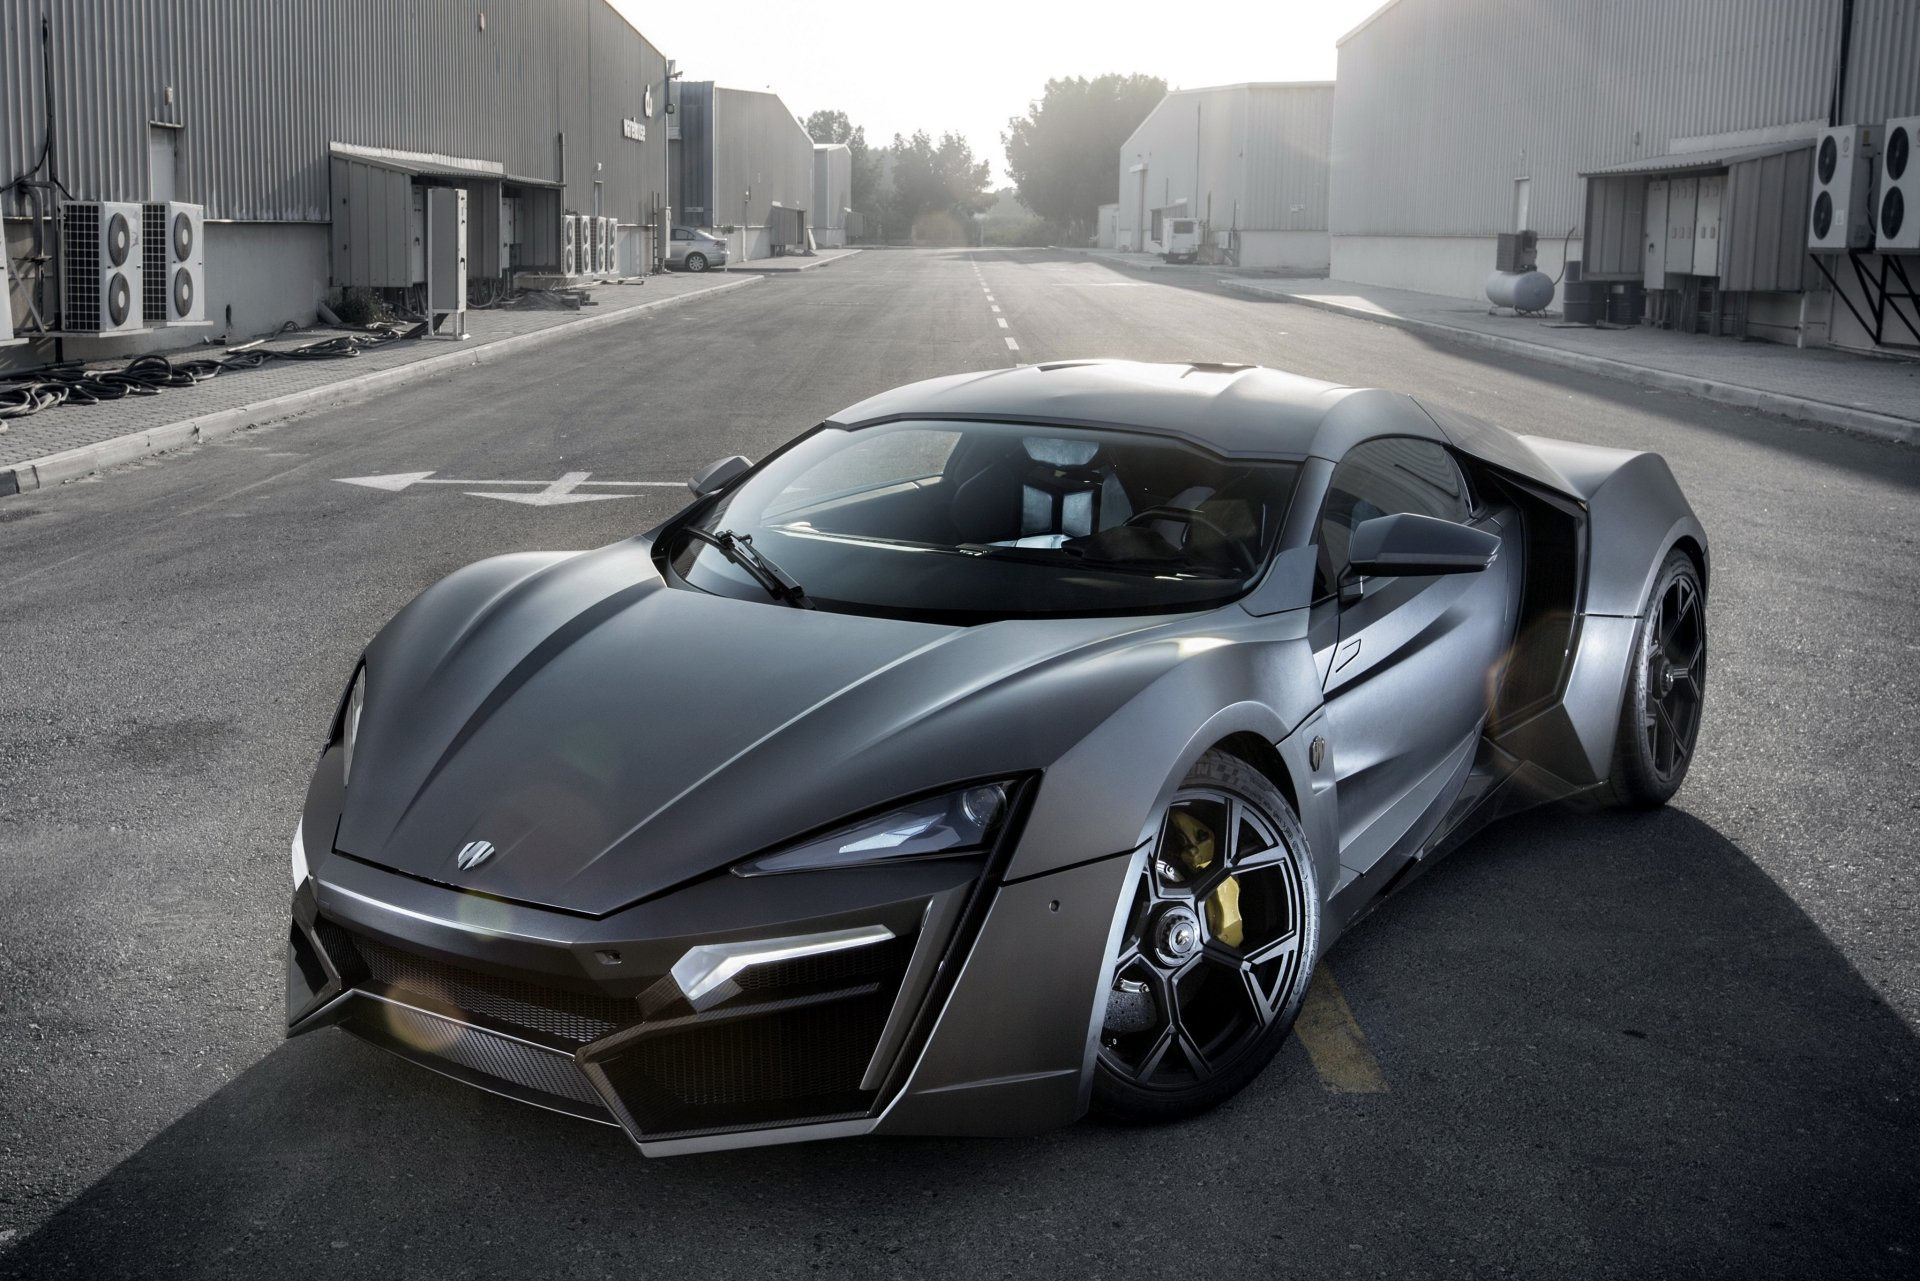 Lykan hypersport 4k ultra hd wallpaper background image - Lykan hypersport wallpaper 1920x1080 ...